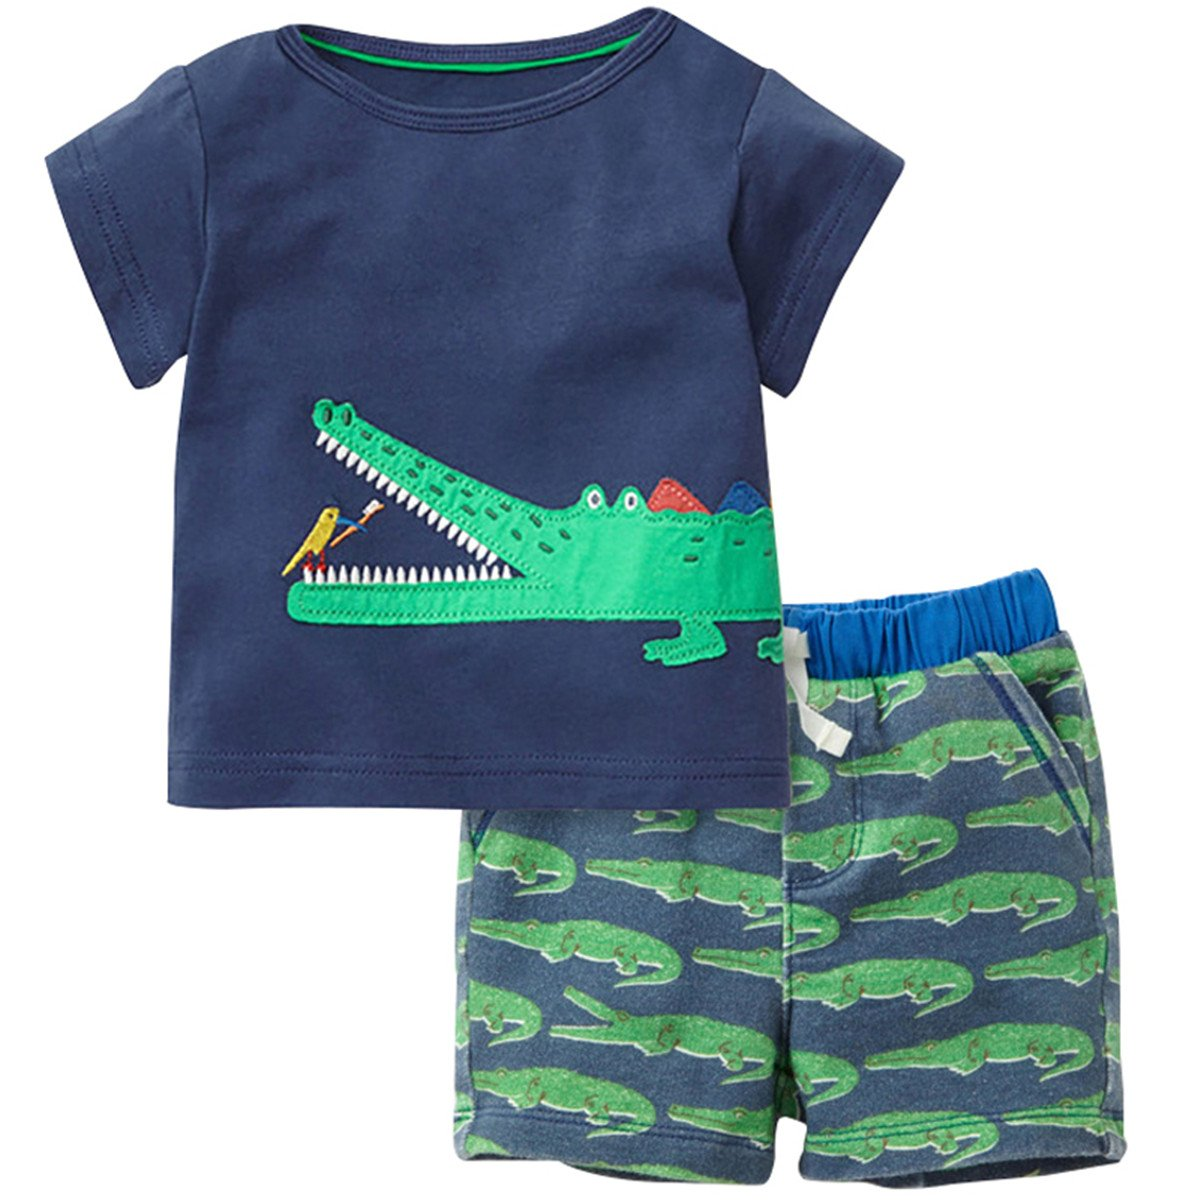 Baby Boys 2 Piece Short Sleeve Summer Summer Outfit Clothing Sets